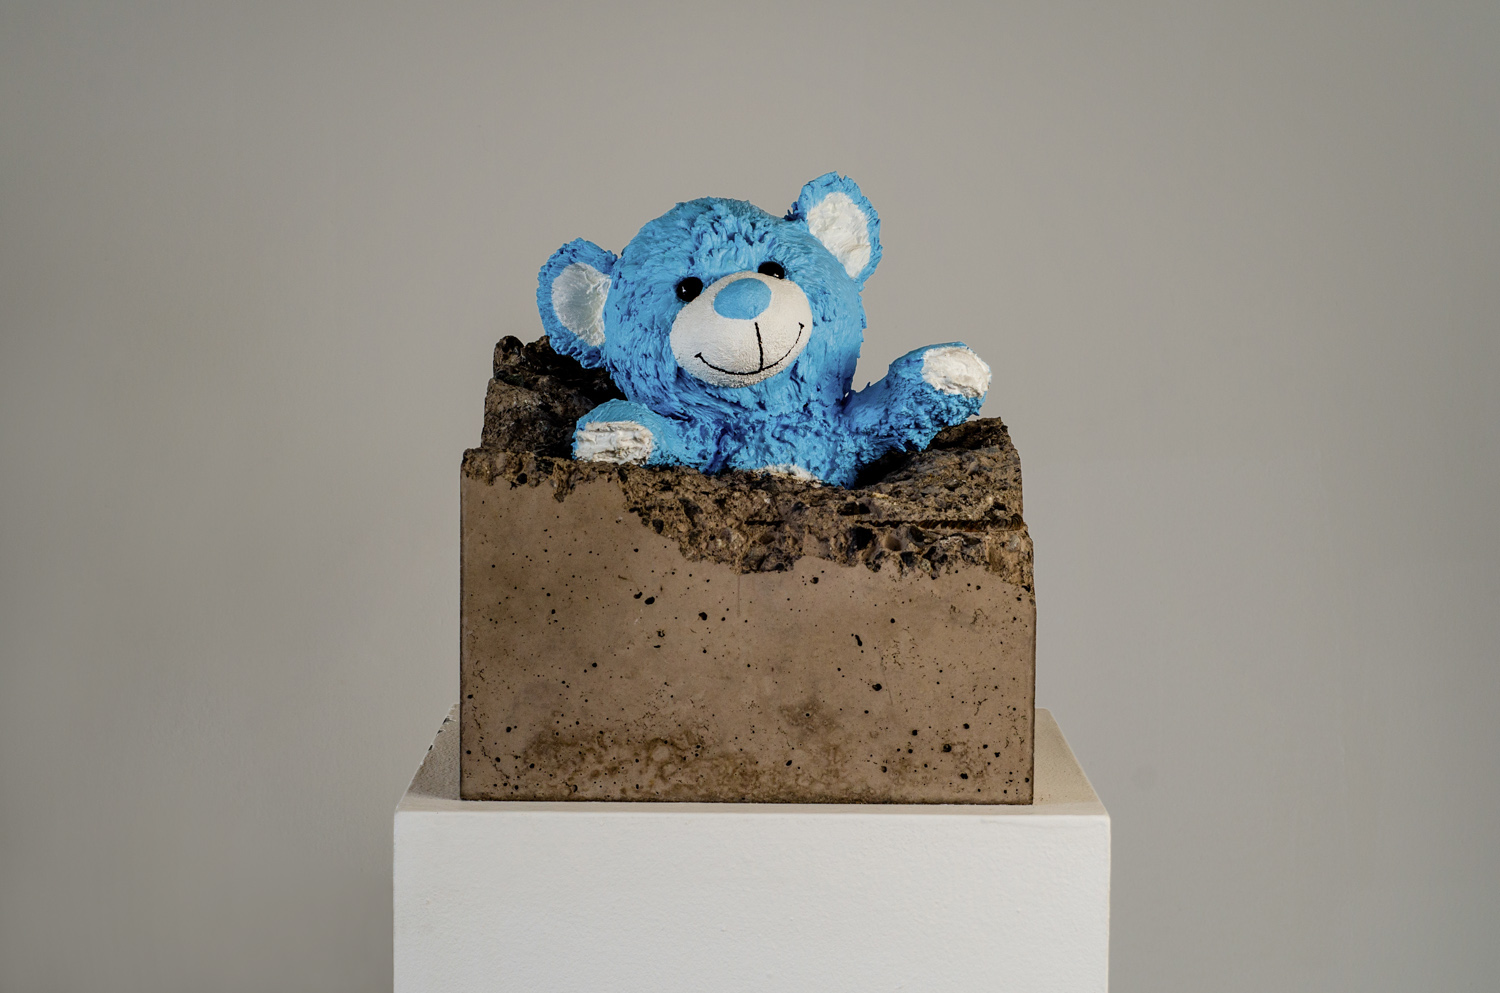 Teddy bear sculpture, concrete and resine by Amarist studio